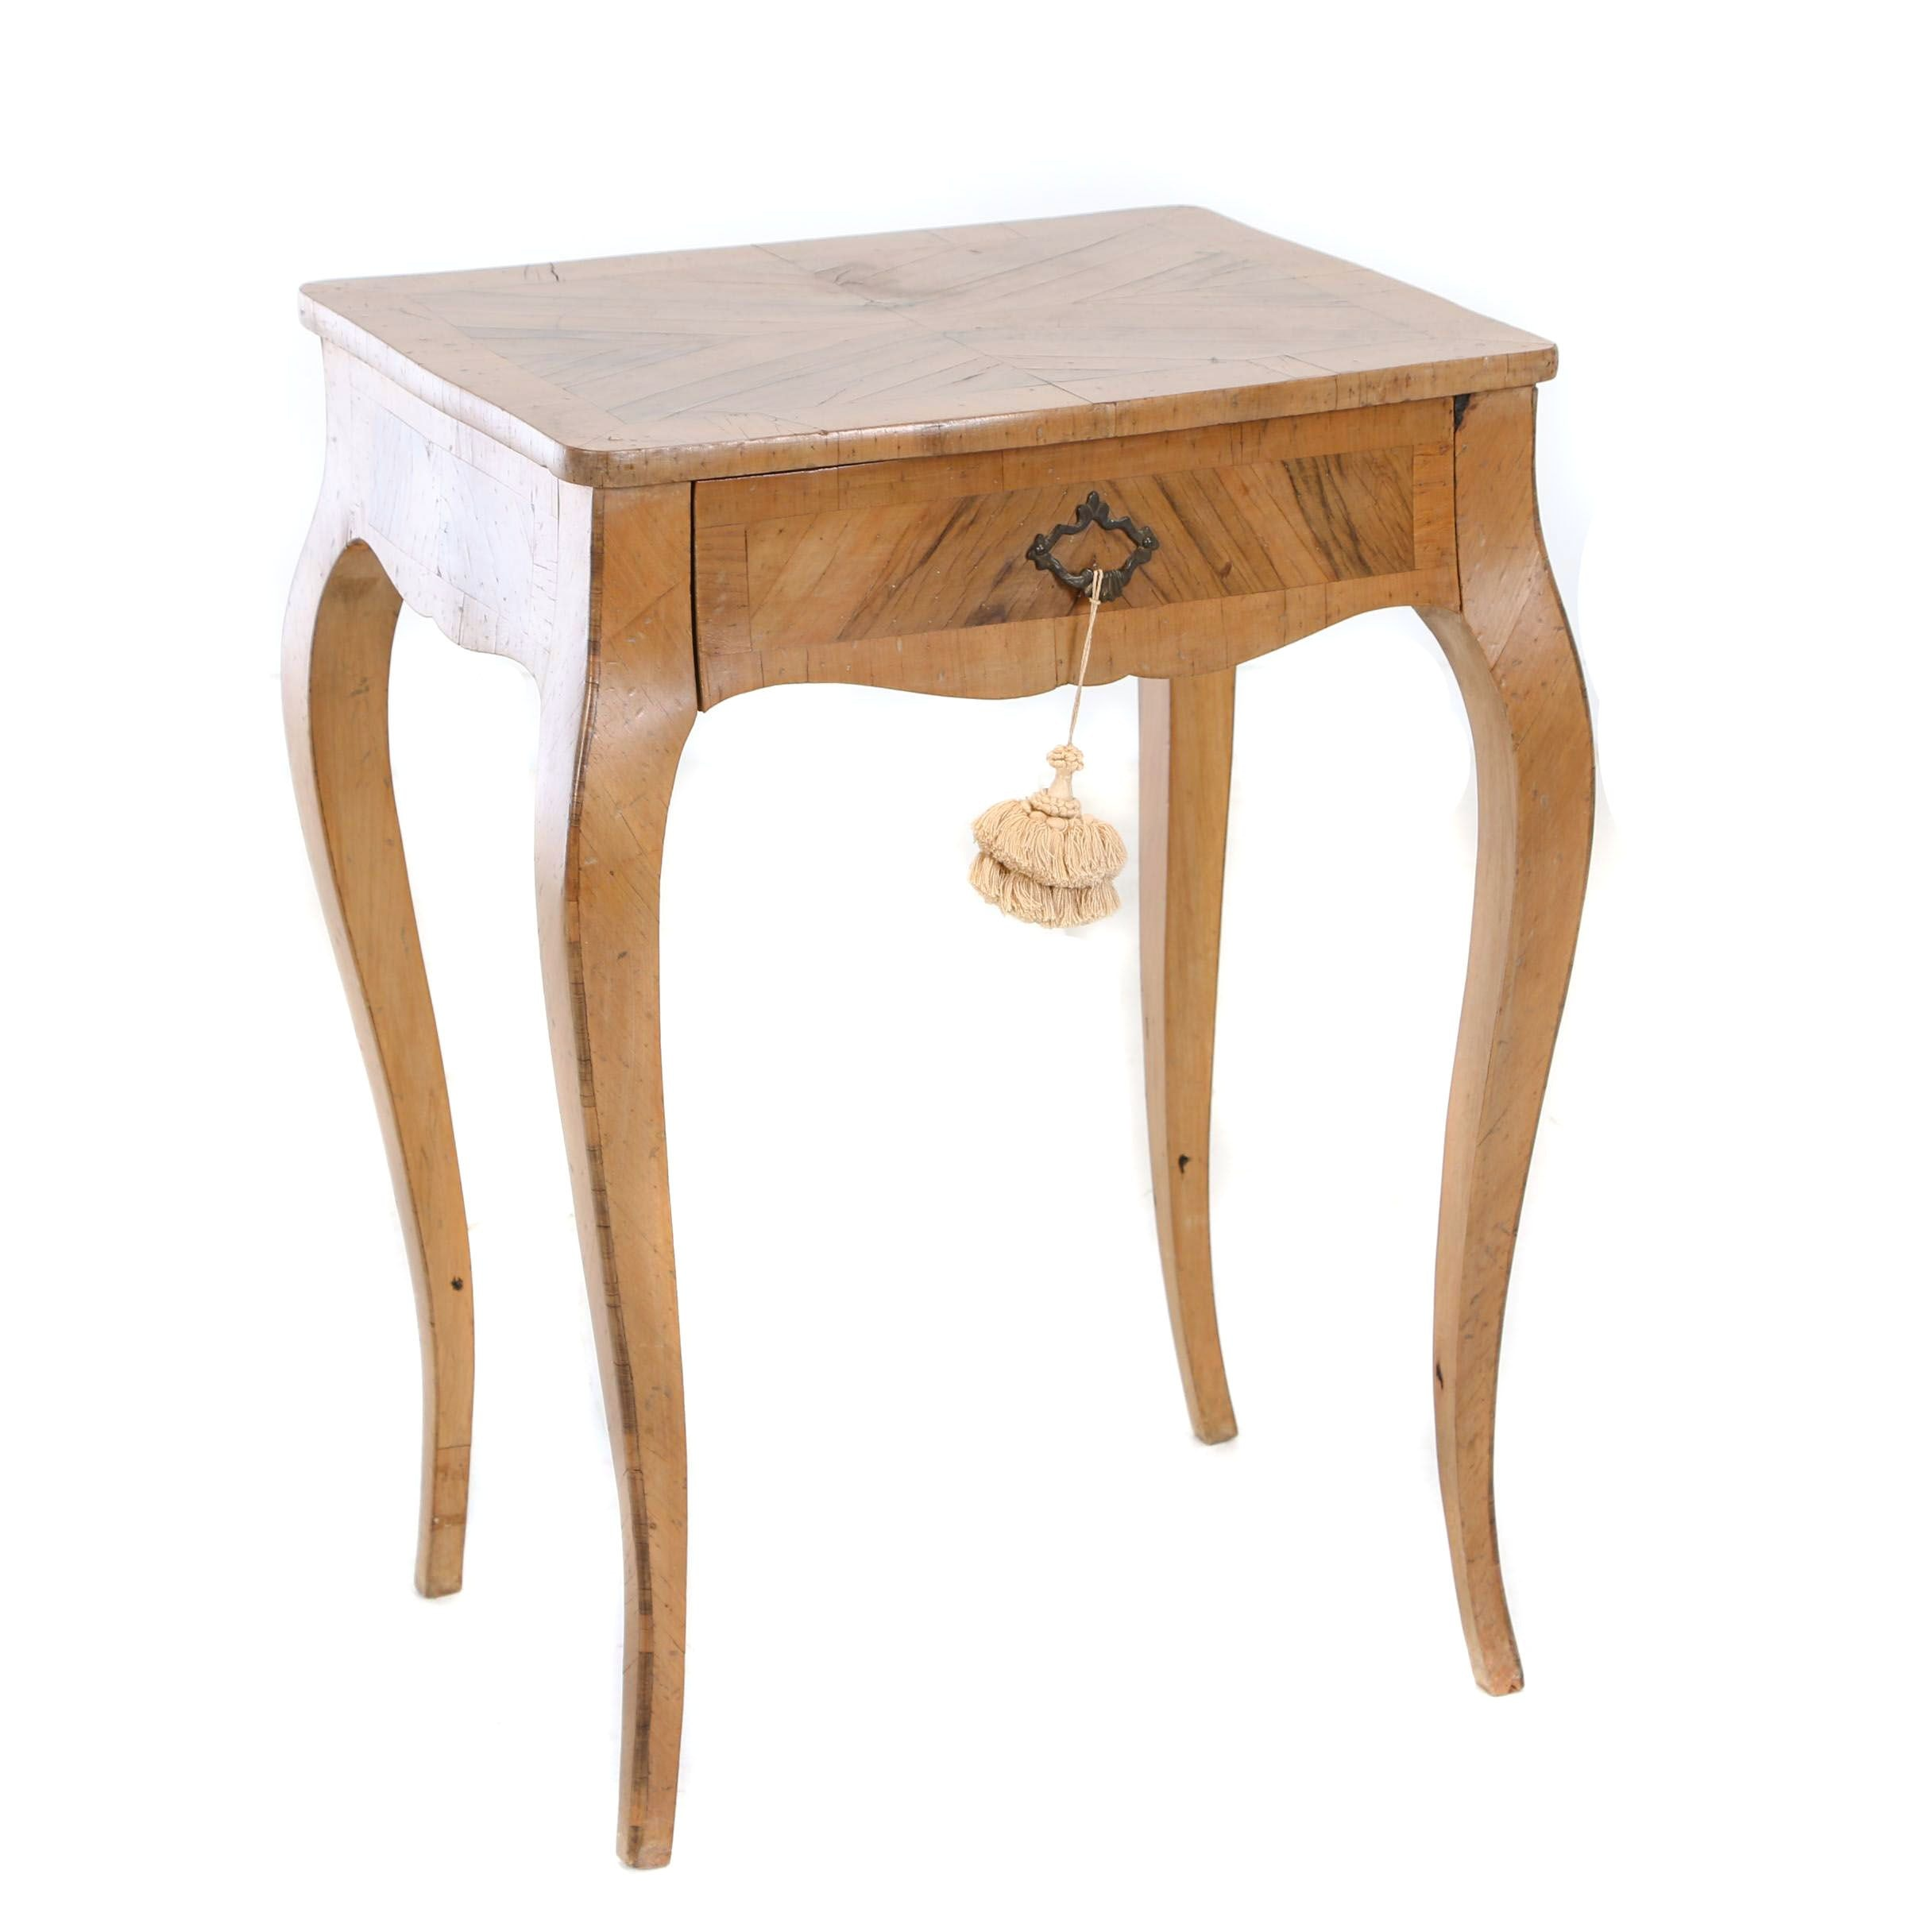 Italian Louis XV Style Olivewood Side Table, 20th Century